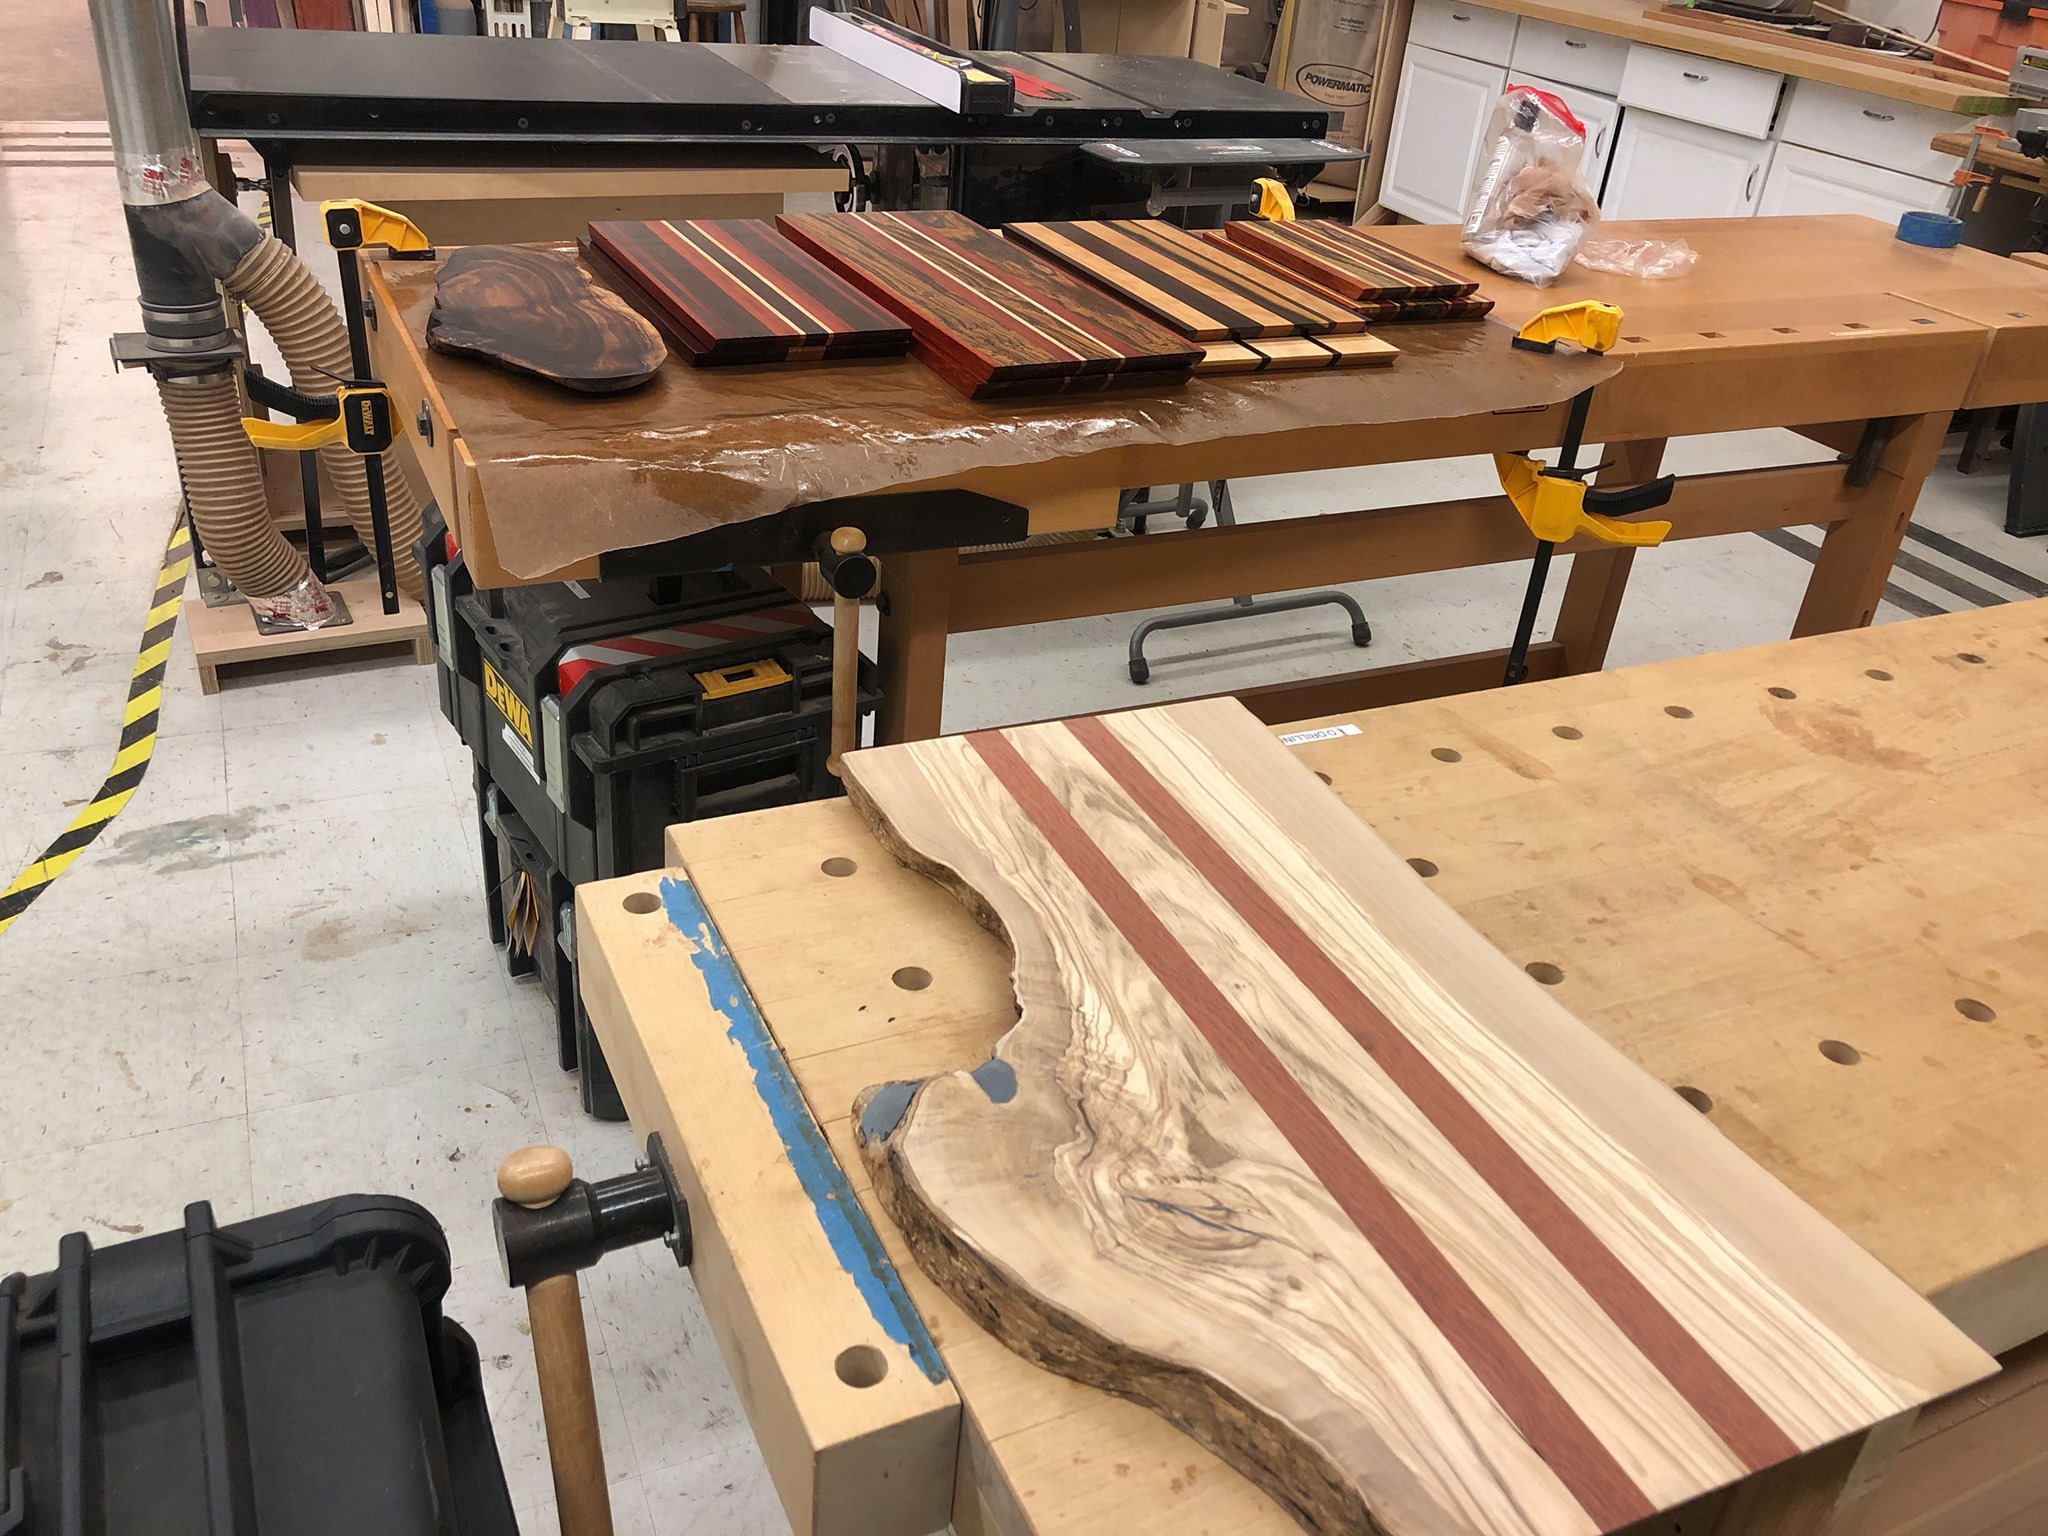 Woodshop projects